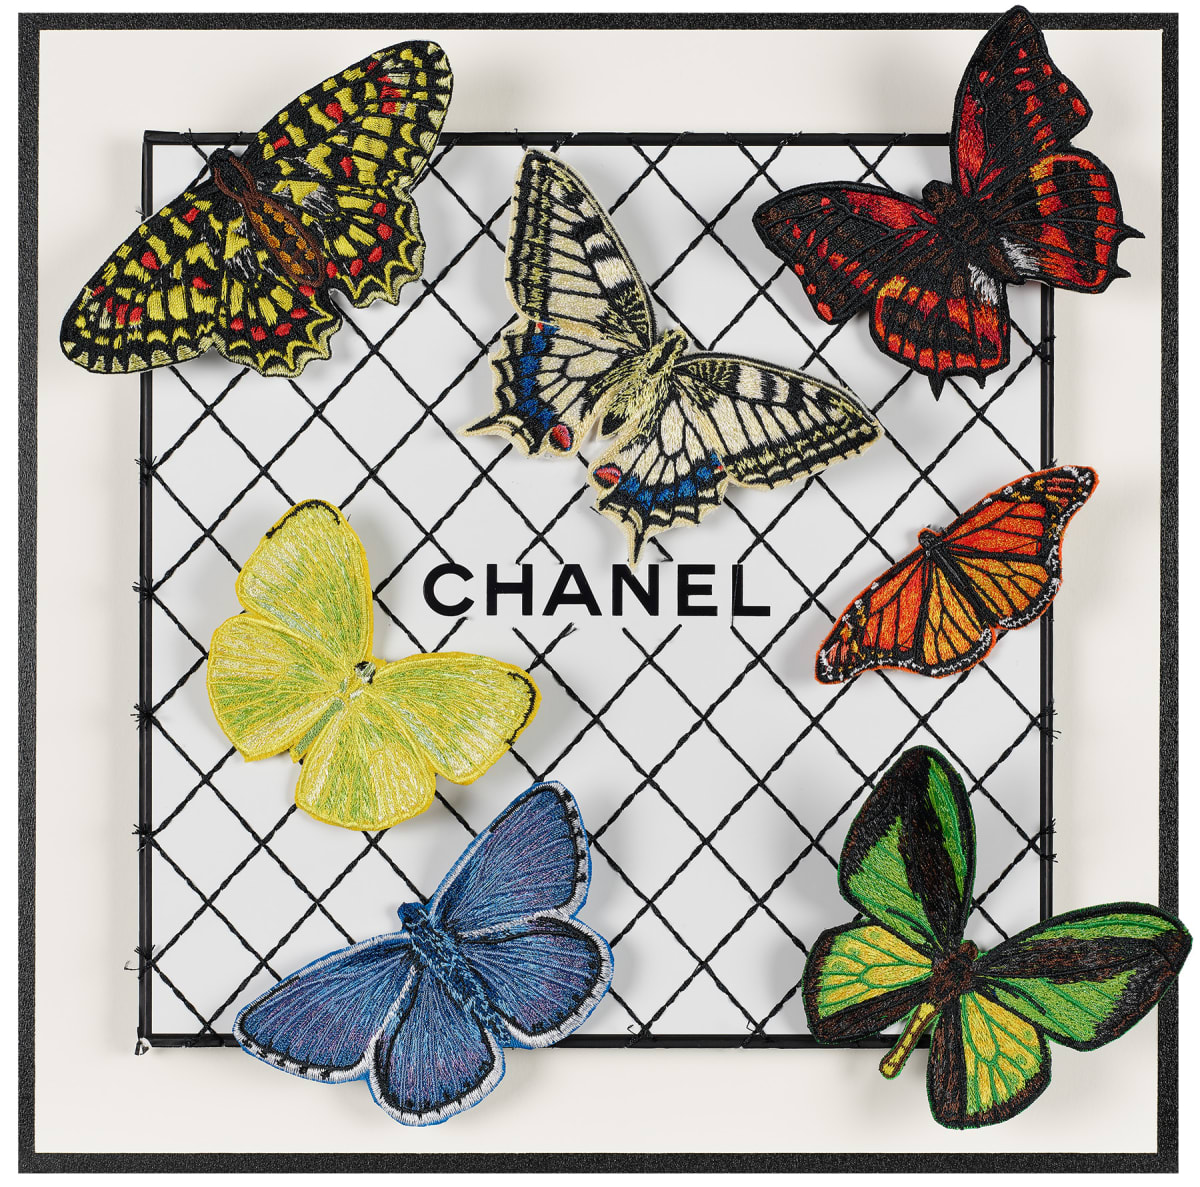 Stephen Wilson, Chanel Butterfly Net III, 2019